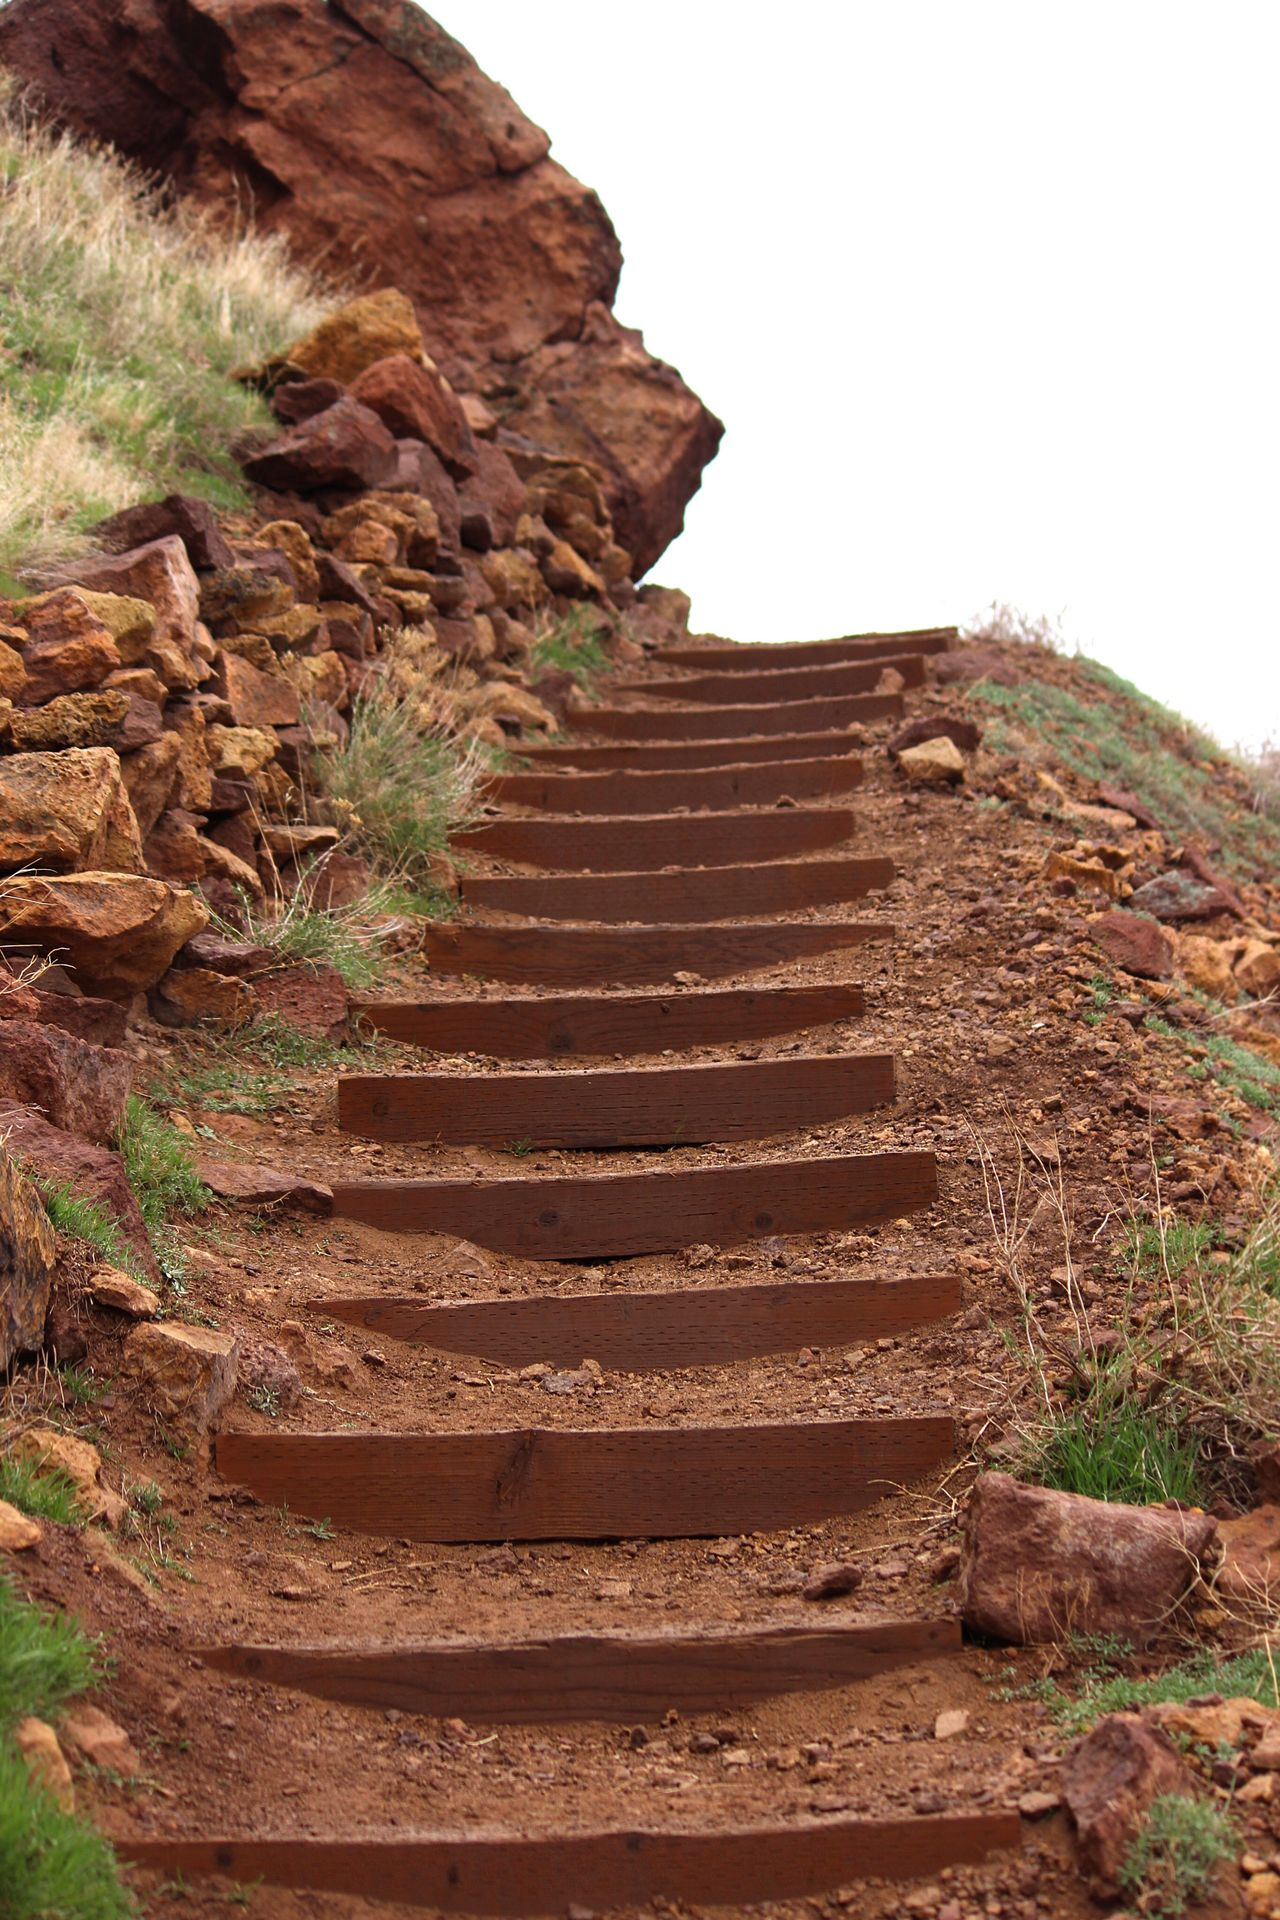 Steps Staircase Steps And Staircases Rock - Object Brown Ancient Low Angle View History Climbing Arid Climate Desert No People Nature Day Outdoors Sky Smith Rock PNW Oregon Oregonexplored Central Oregon Rockhound Nature Landscape Beauty In Nature